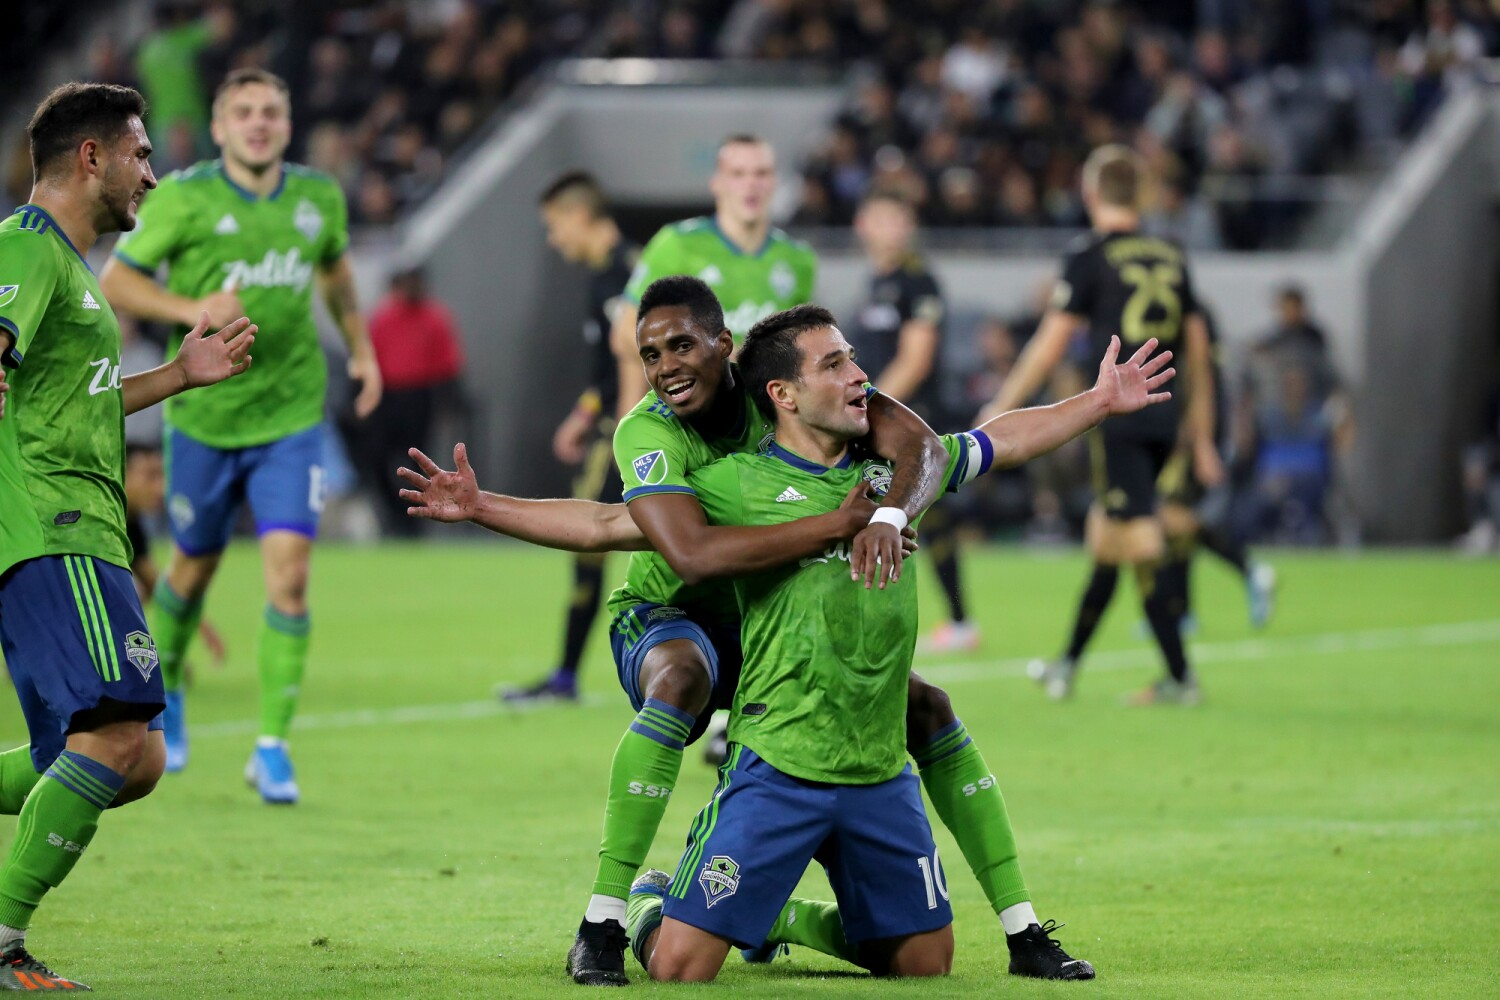 They meet again: LAFC faces Seattle Sounders in MLS Is Back knockout round